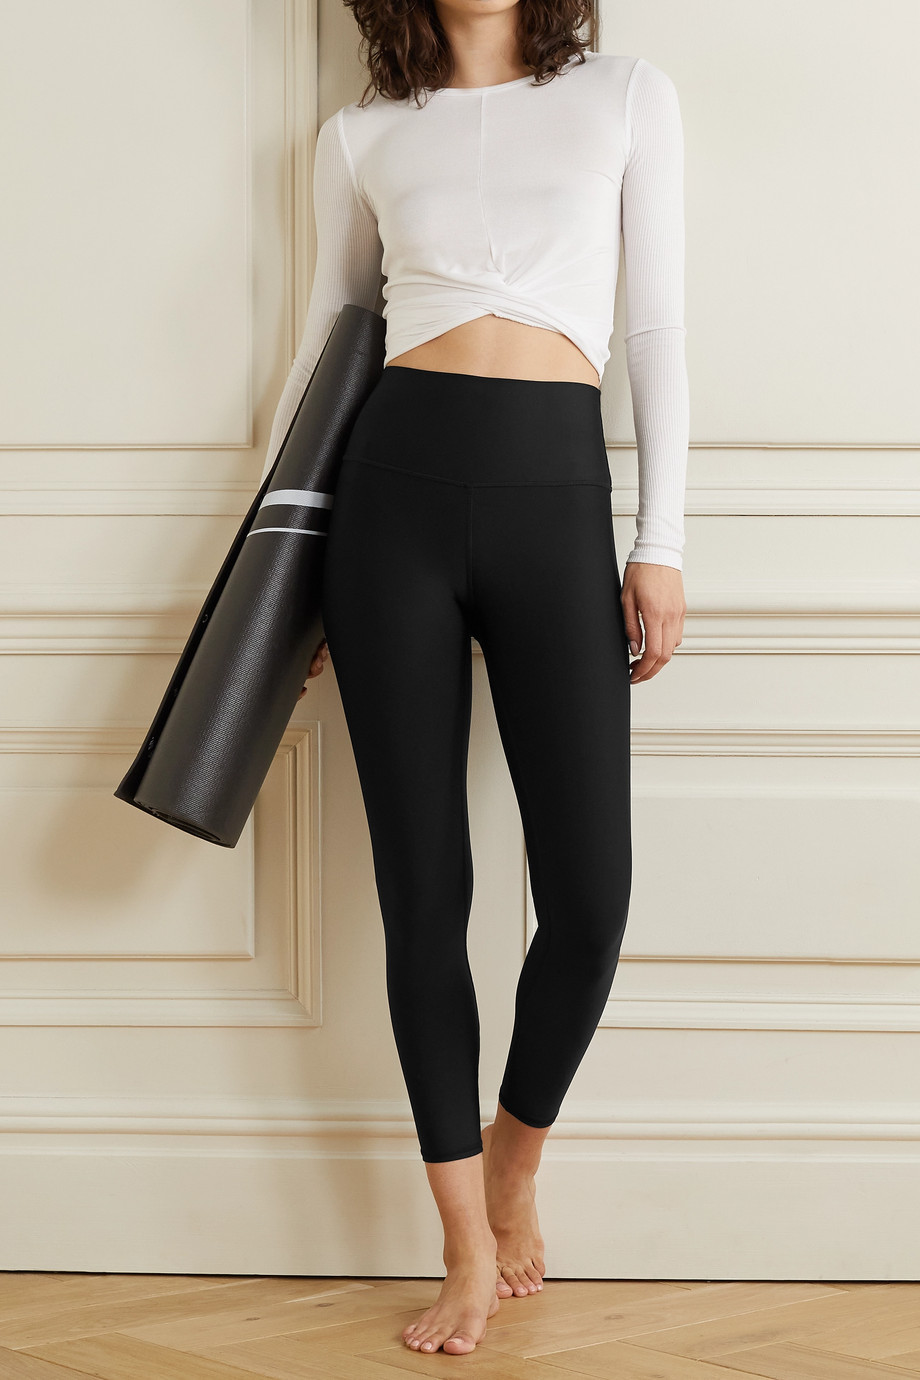 ALO YOGA Airlift stretch leggings